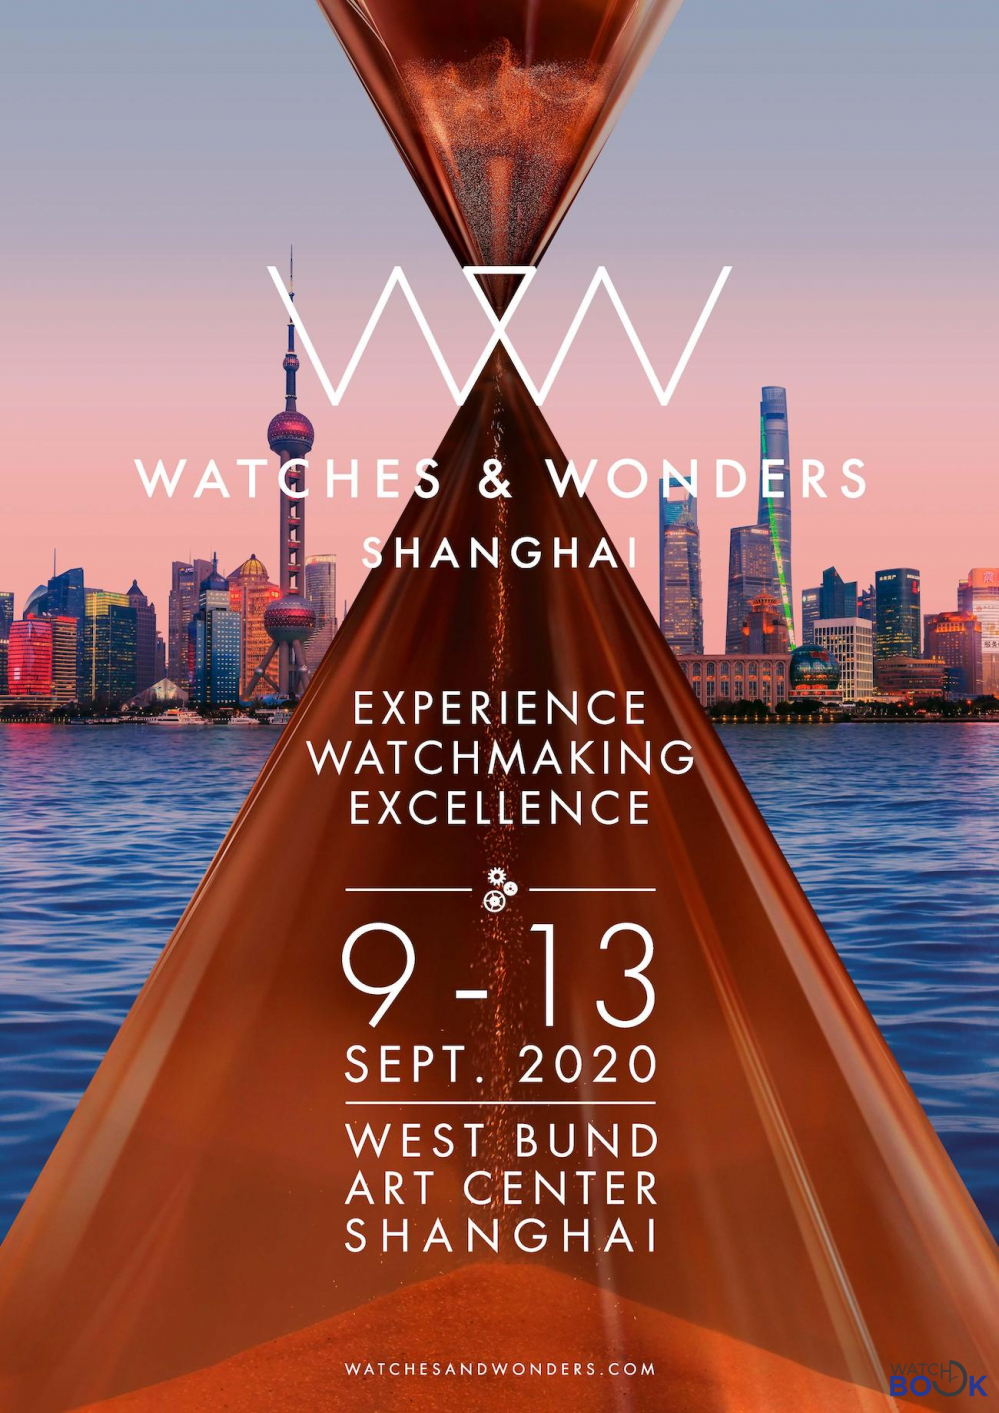 watches-and-wonders-shanghai-china-september-2020-1